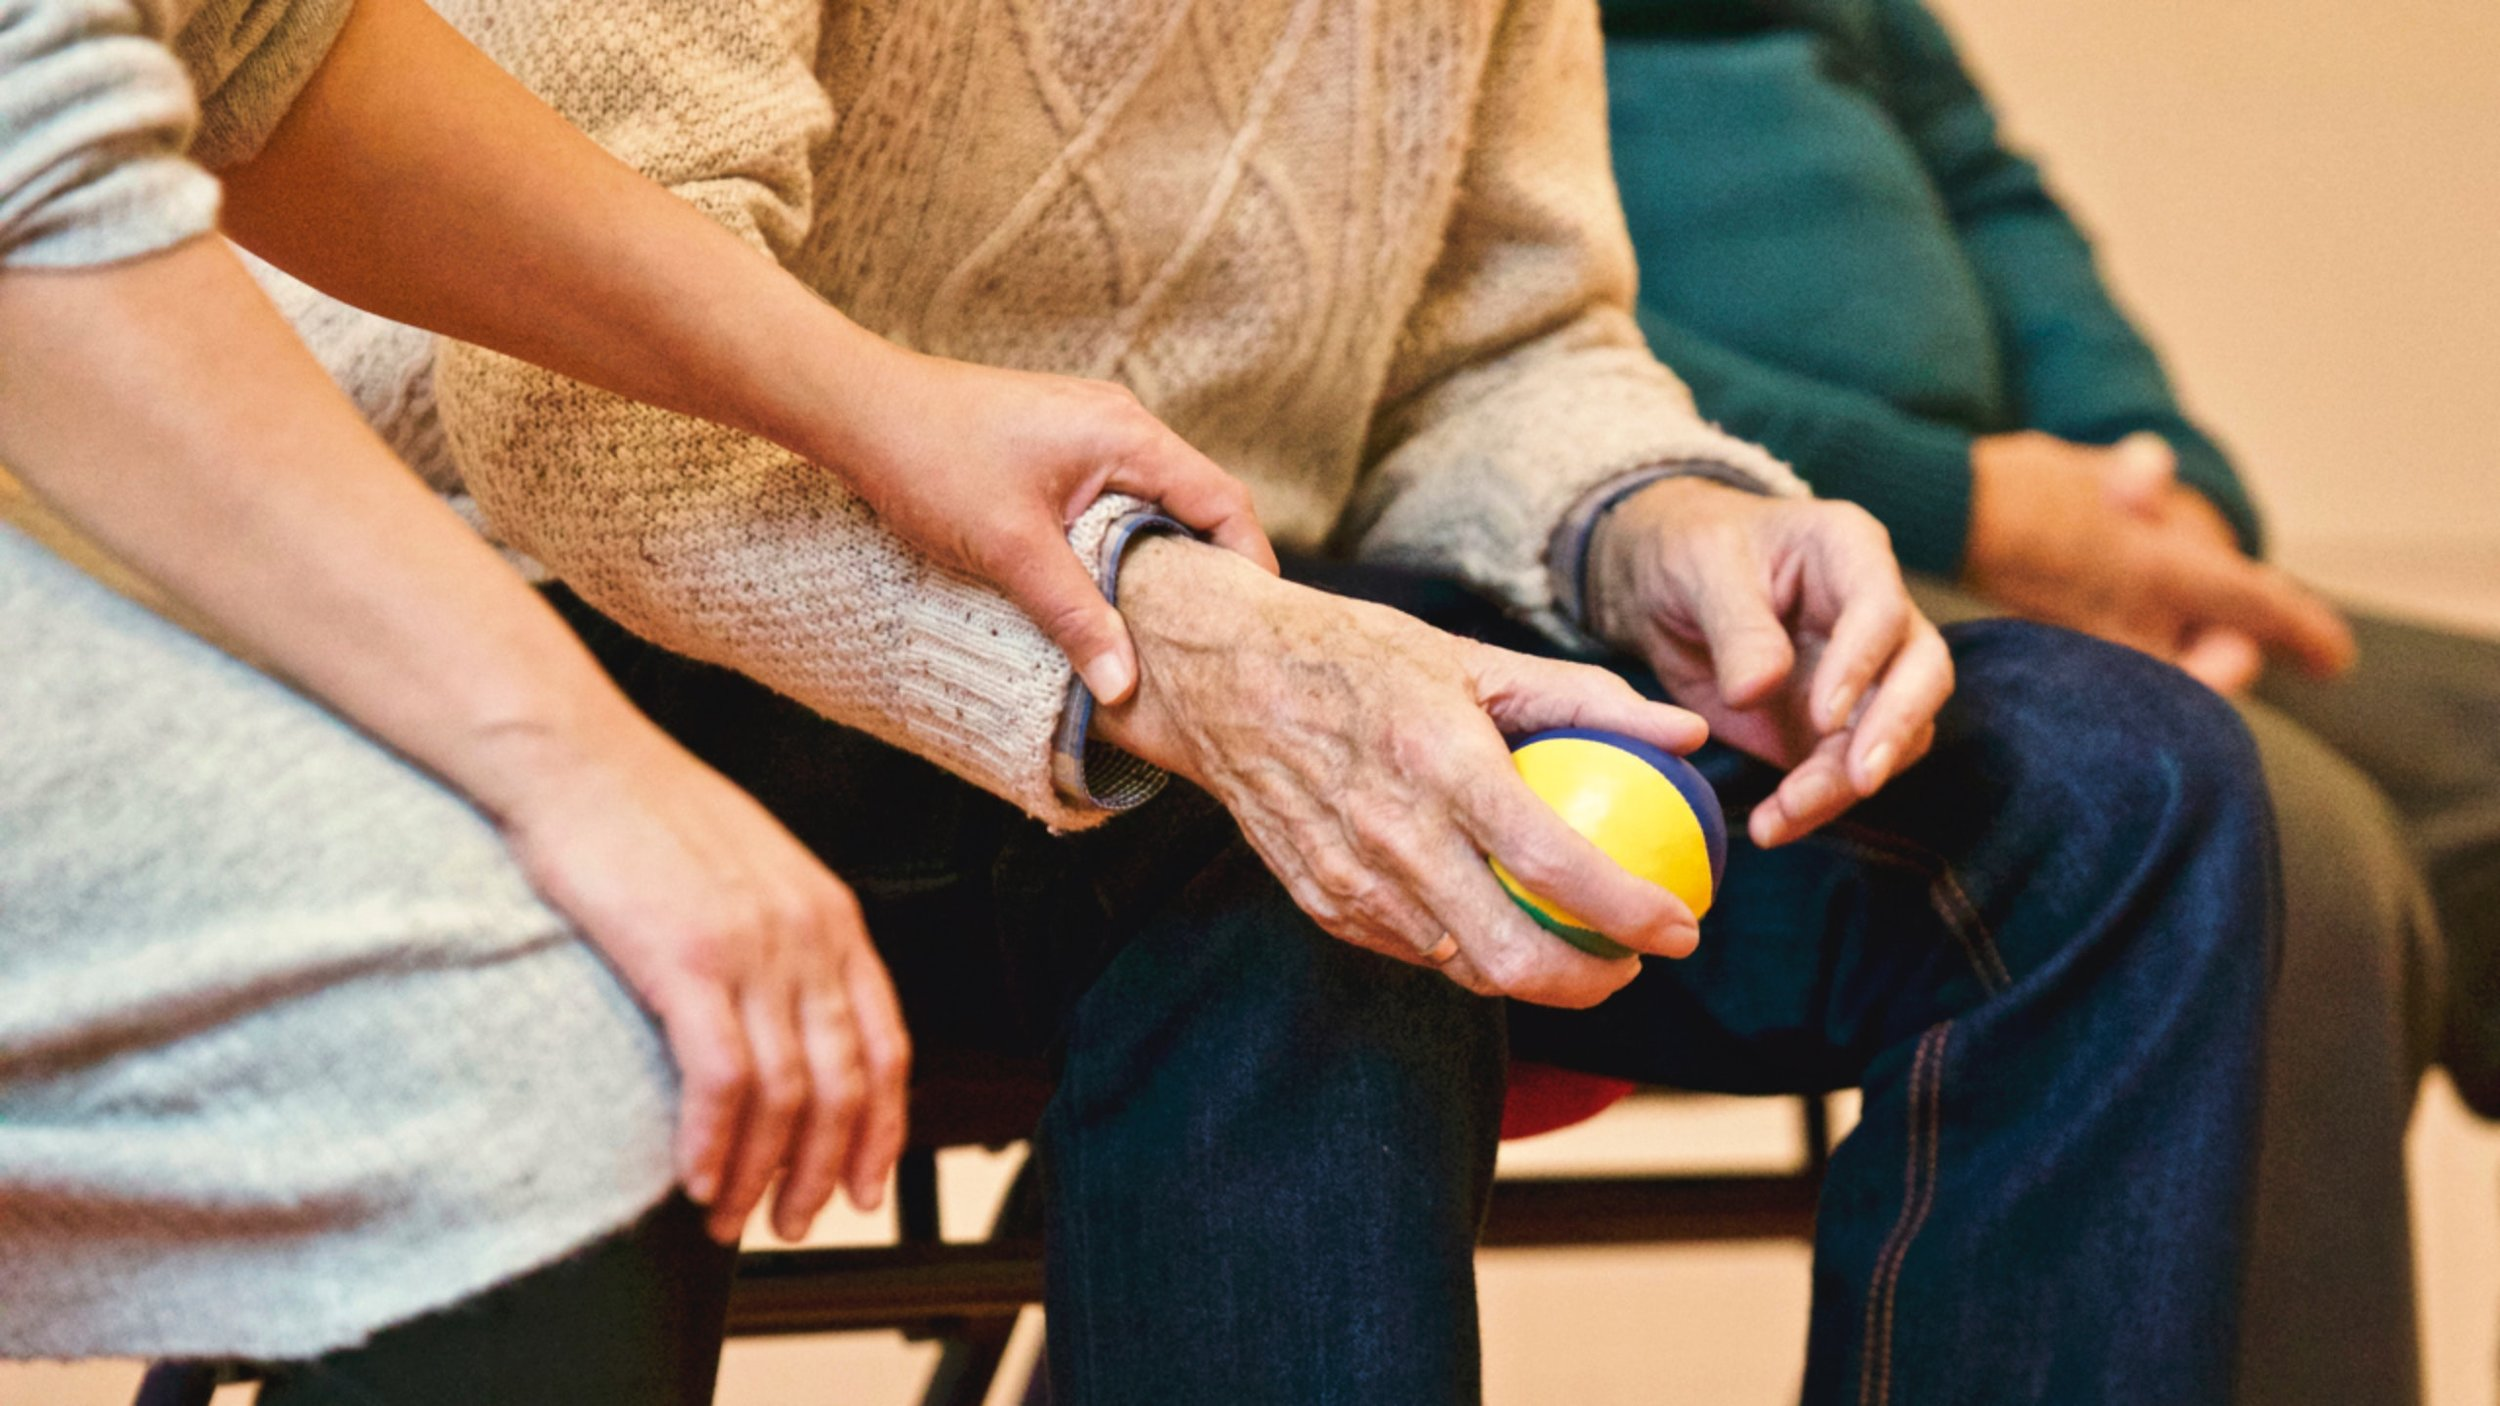 Successful Senior Aging & Caregiver Well-Being -